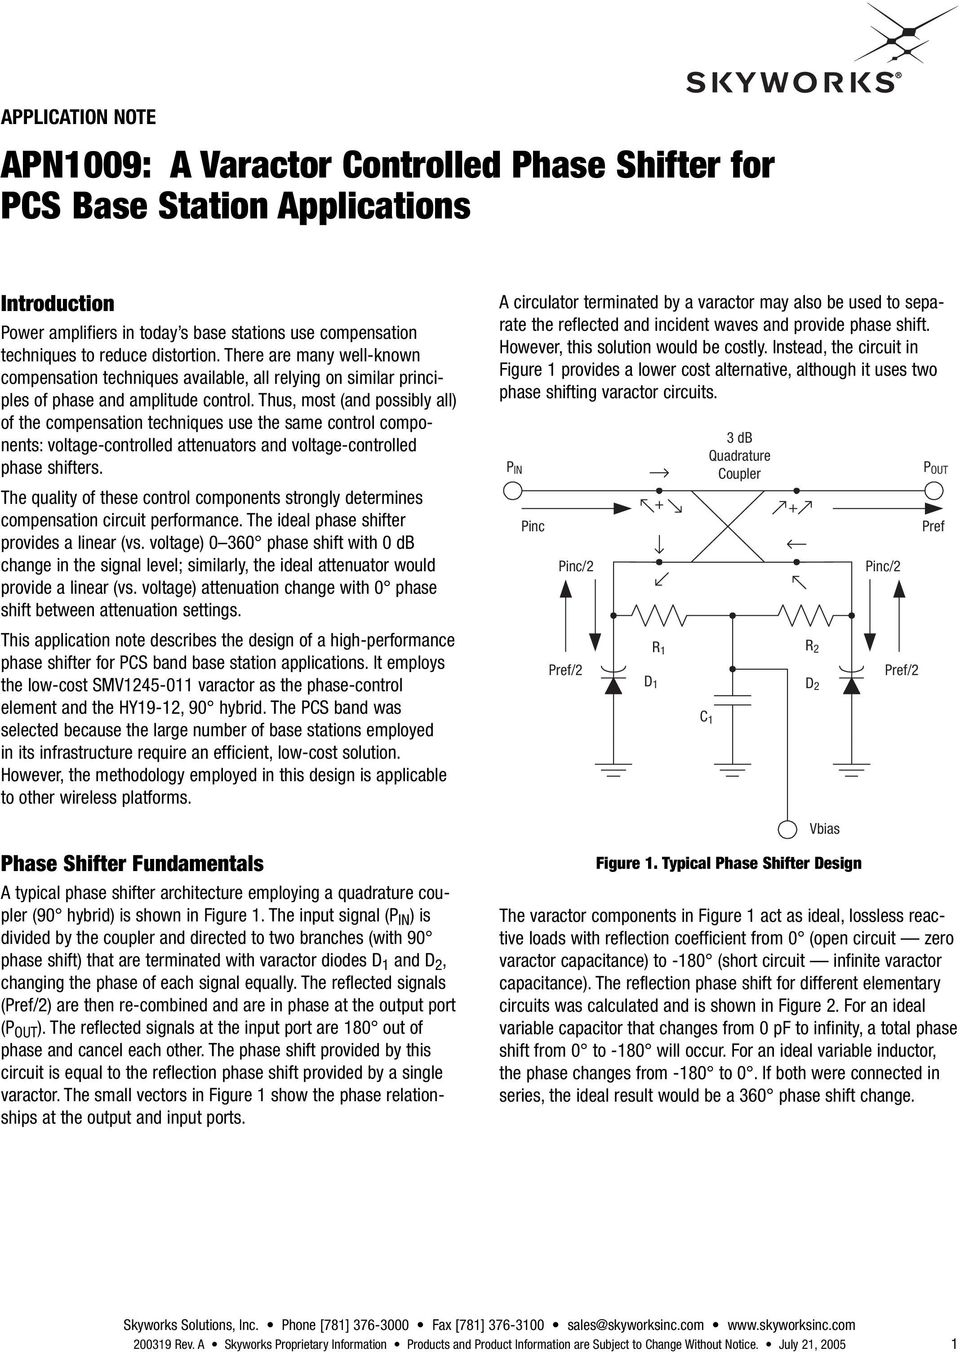 Apn1009 A Varactor Controlled Phase Shifter For Pcs Base Station Voltage Attenuator Thus Most And Possibly All Of The Compensation Techniques Use Same Control